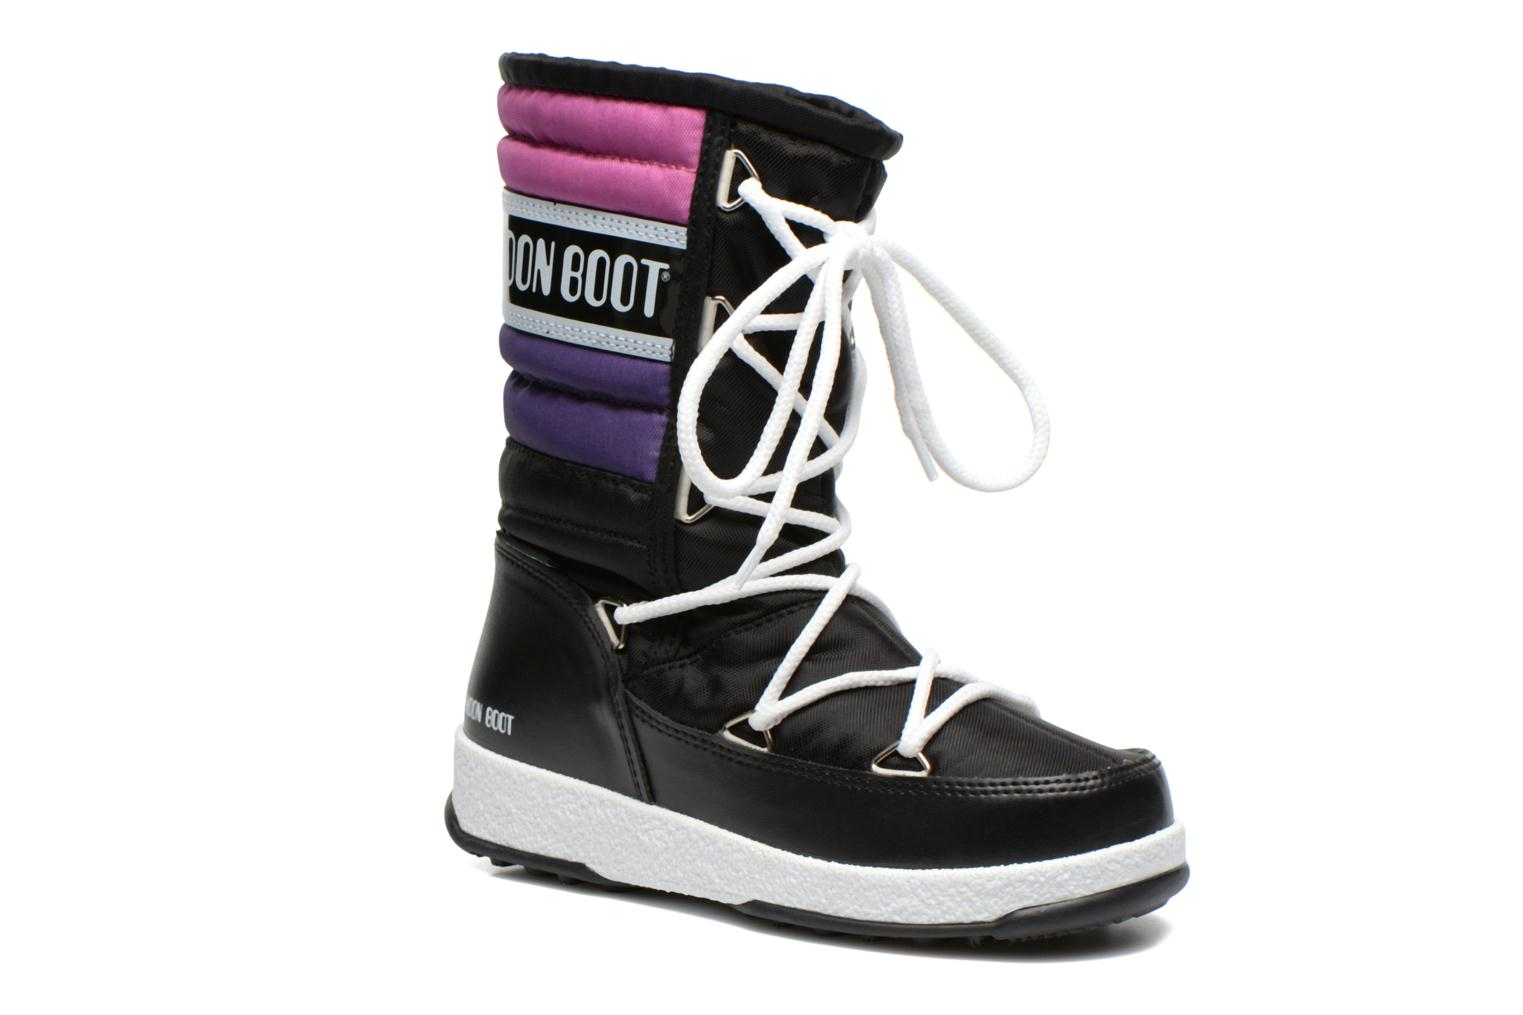 Laarzen Moon Boot W.E. Quilted Jr Wp by Moon Boot